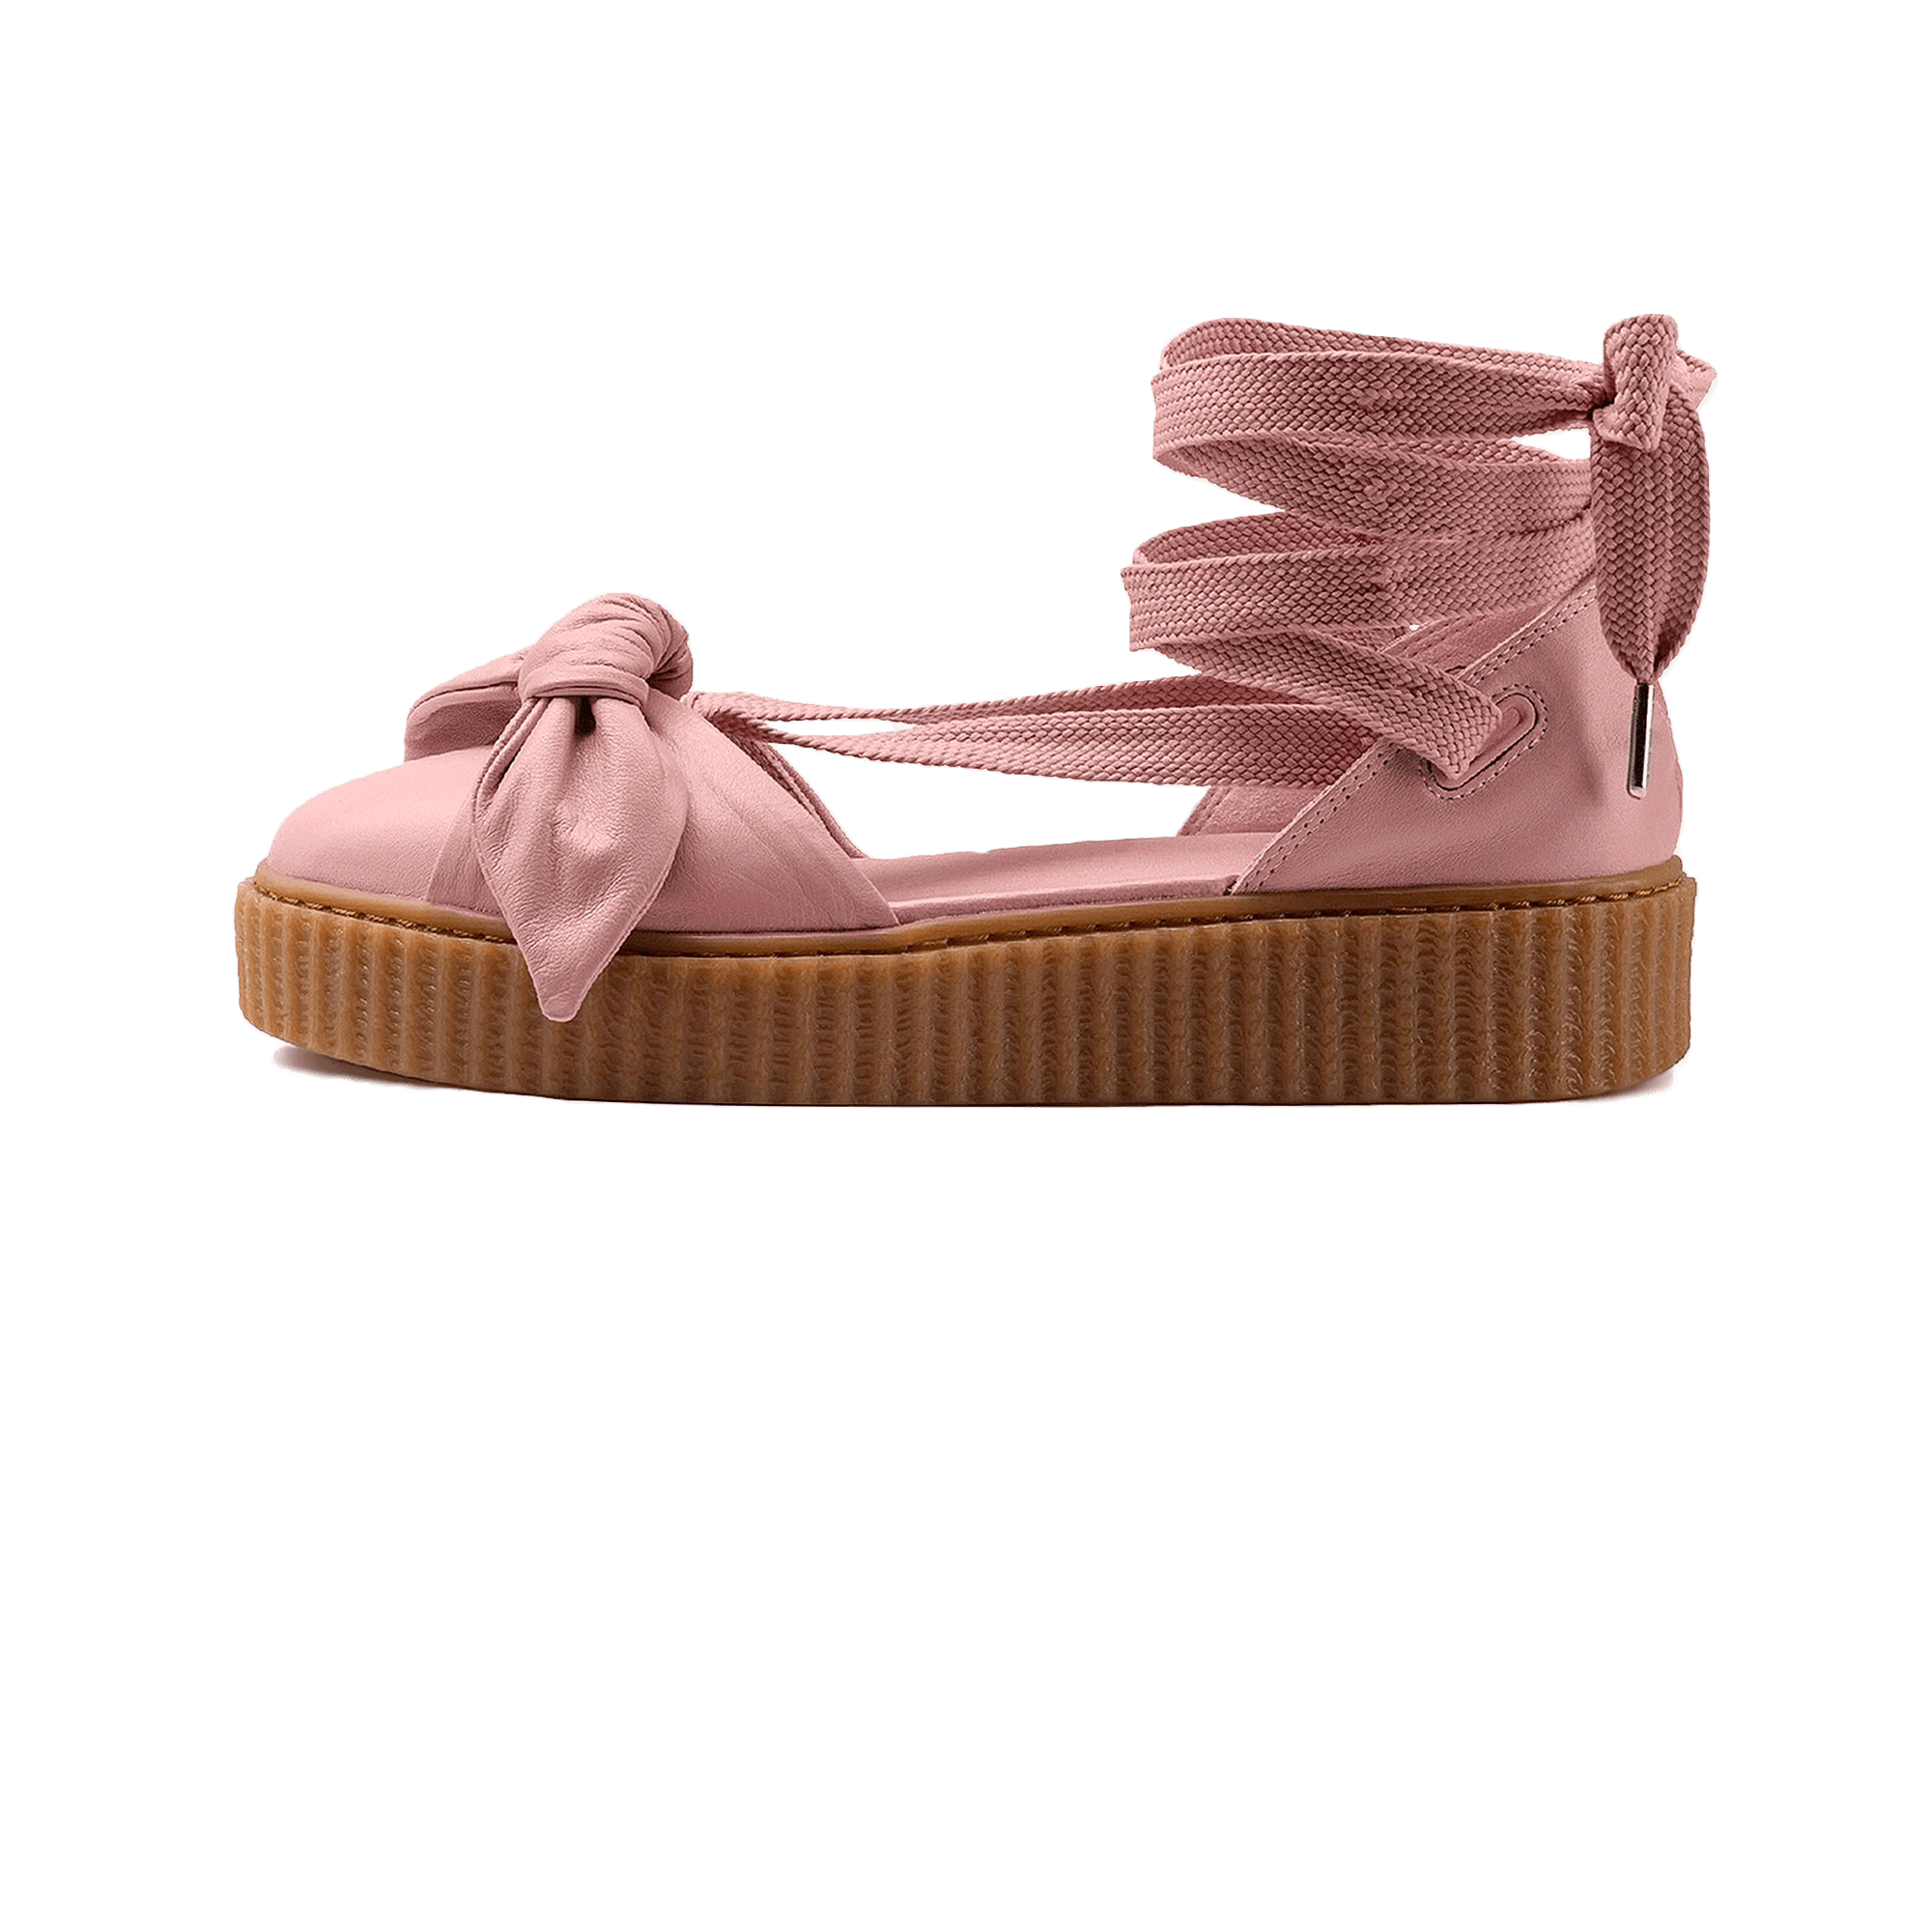 huge selection of 02b4e aed11 Puma Fenty by Rihanna Bow Creeper Sandal pink/gum - Woman | Holypopstore.com